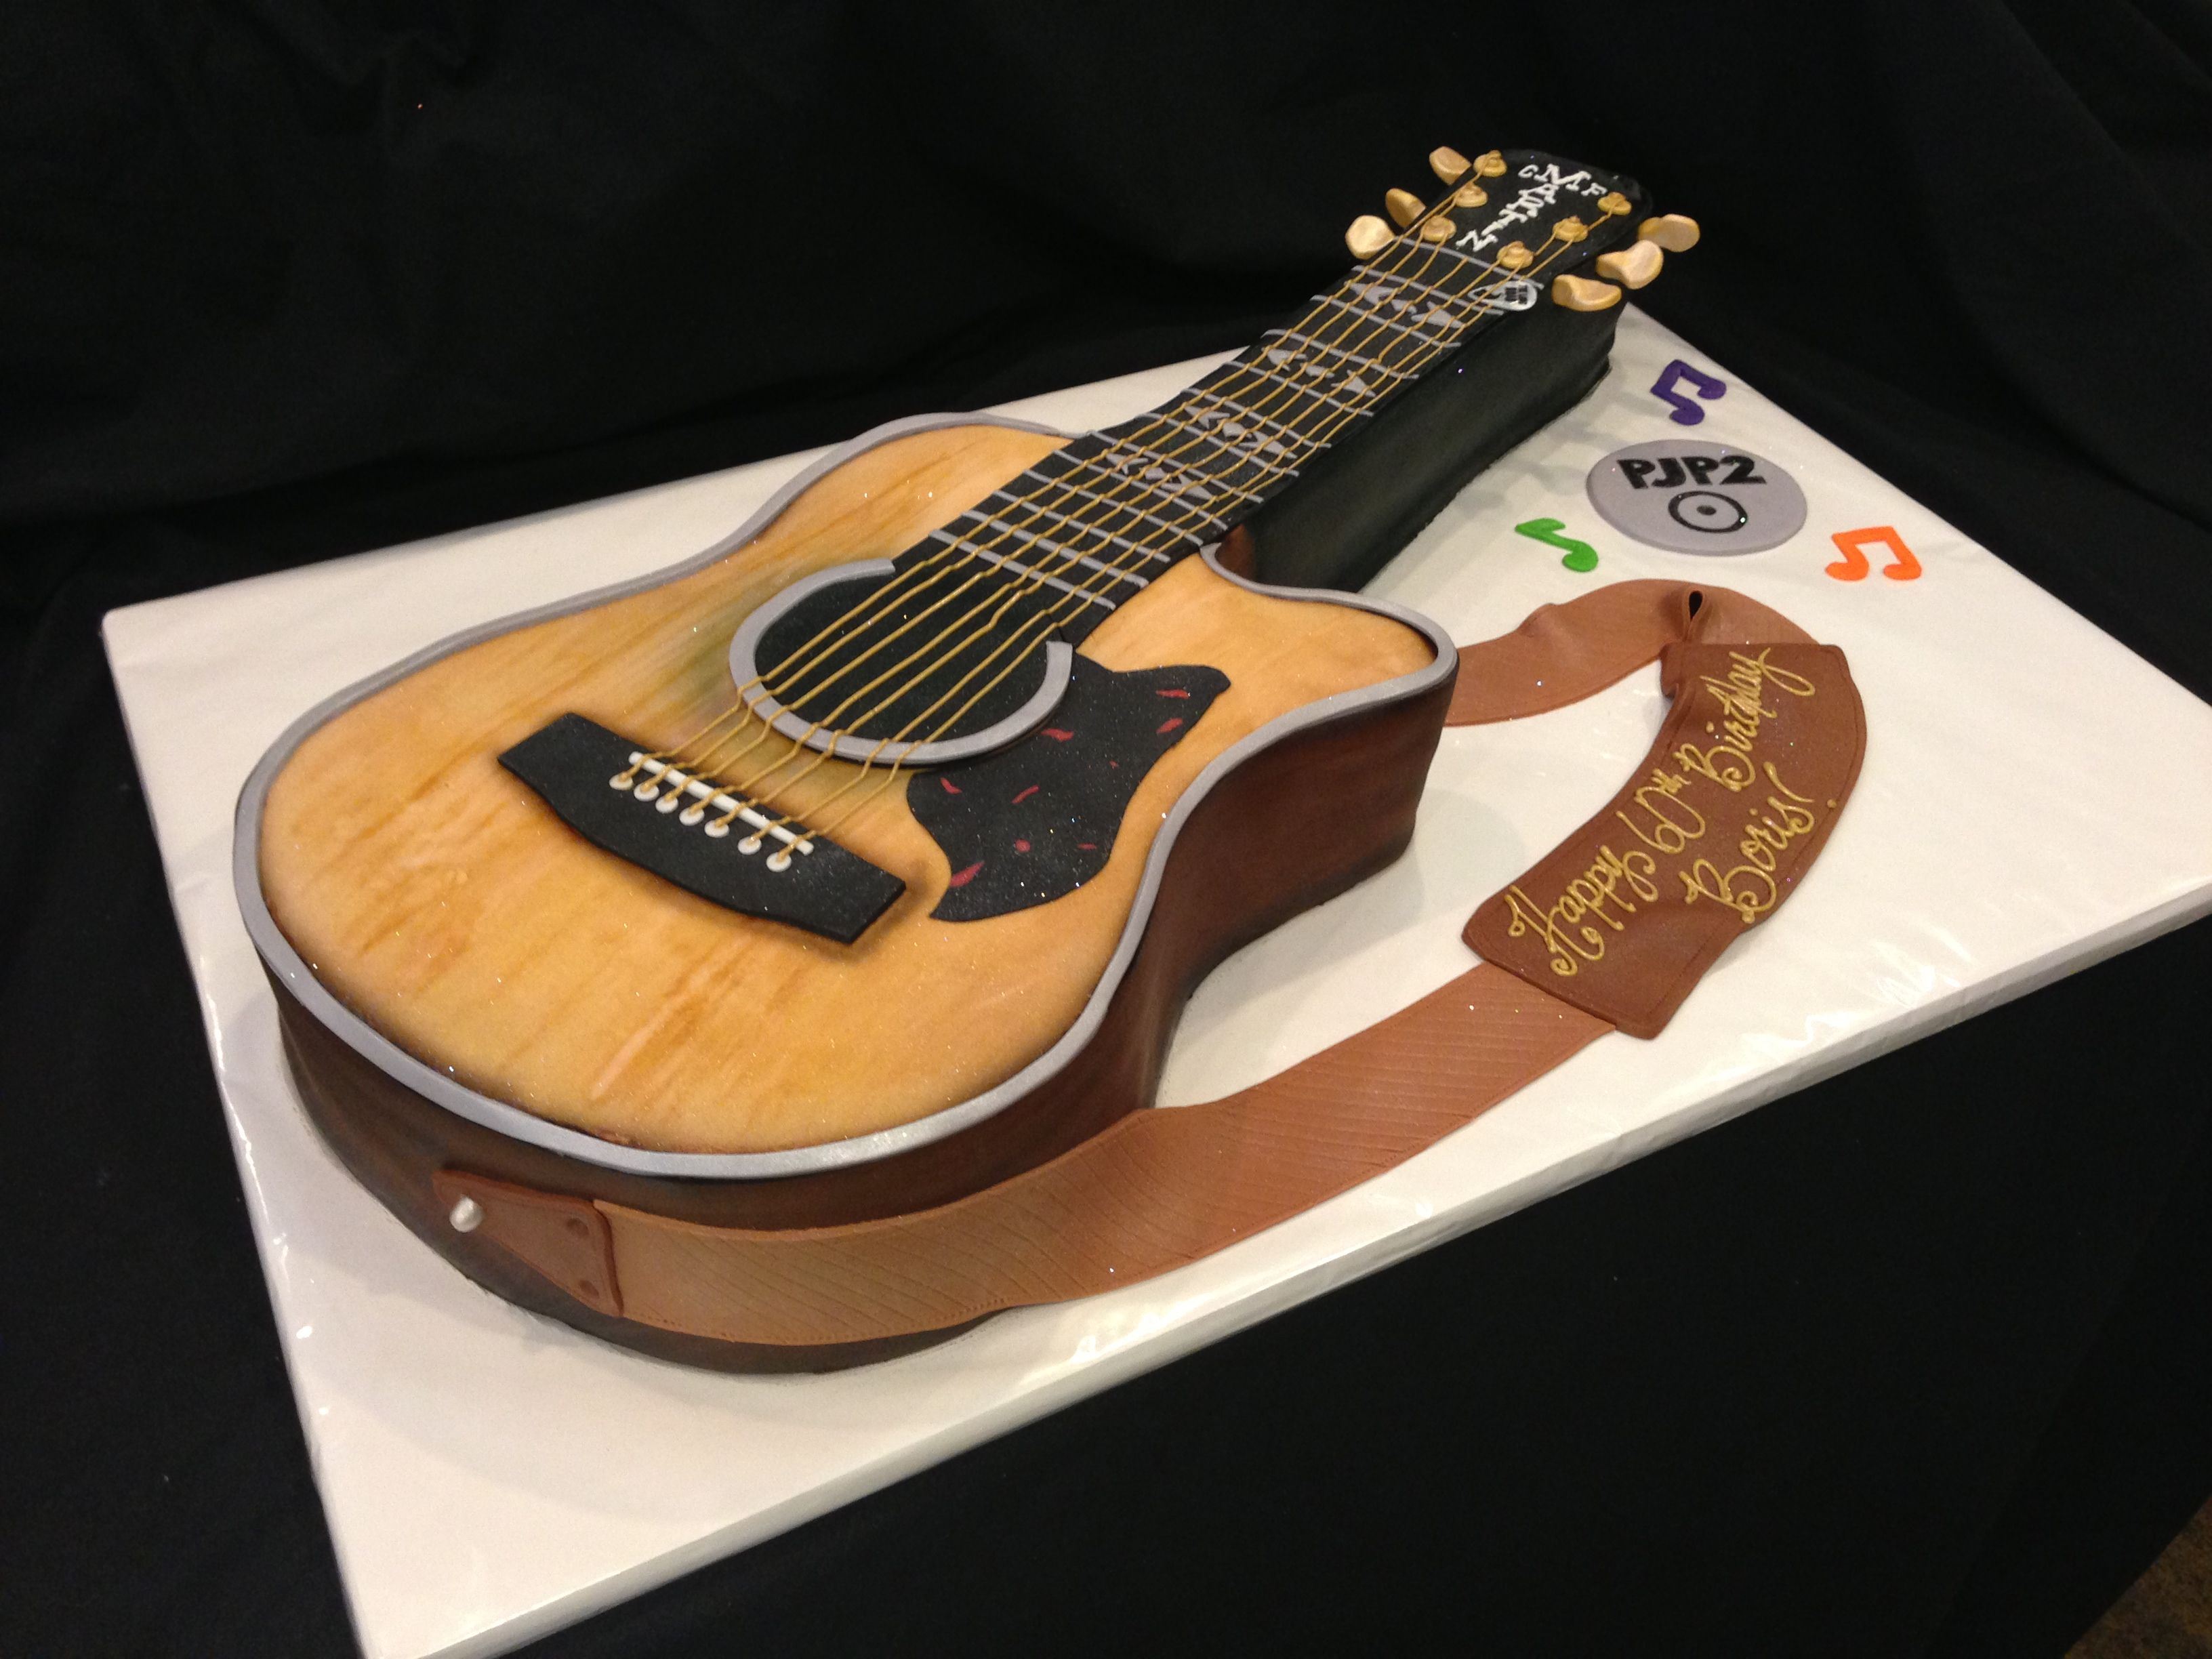 Fabulous Guitar Cake With Images Guitar Cake Guitar Birthday Cakes Funny Birthday Cards Online Elaedamsfinfo